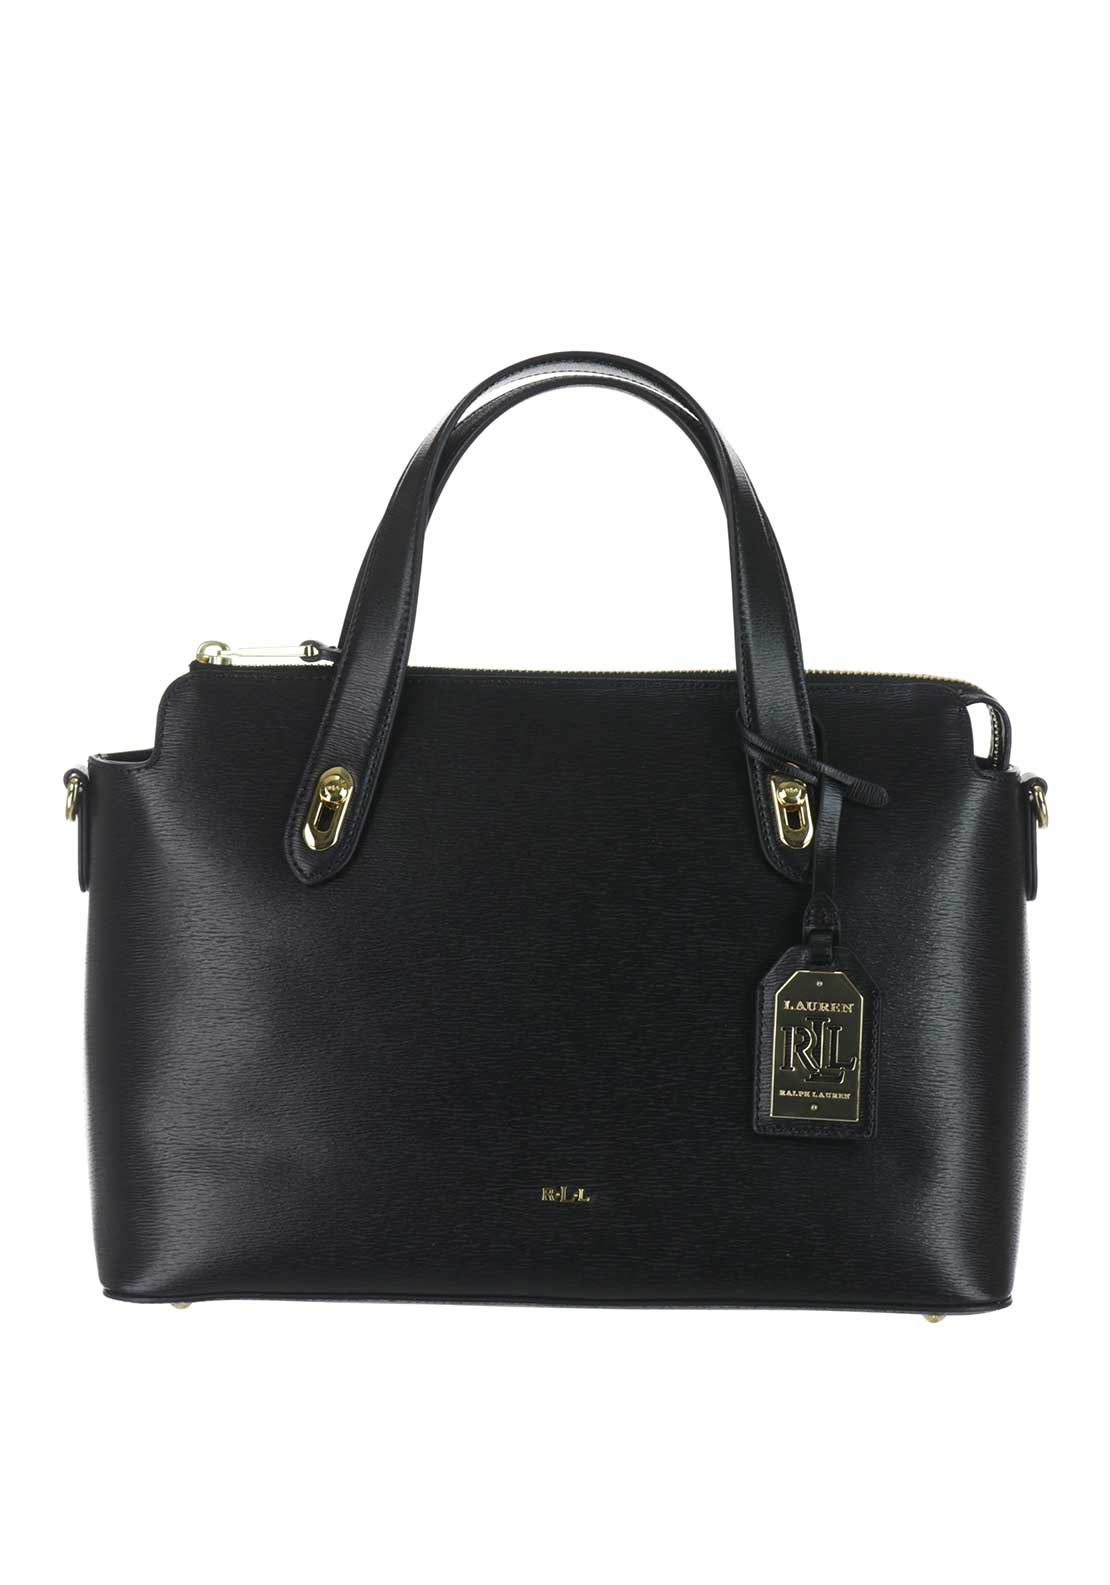 Lauren Ralph Lauren Leather Emily Satchel Bag, Black